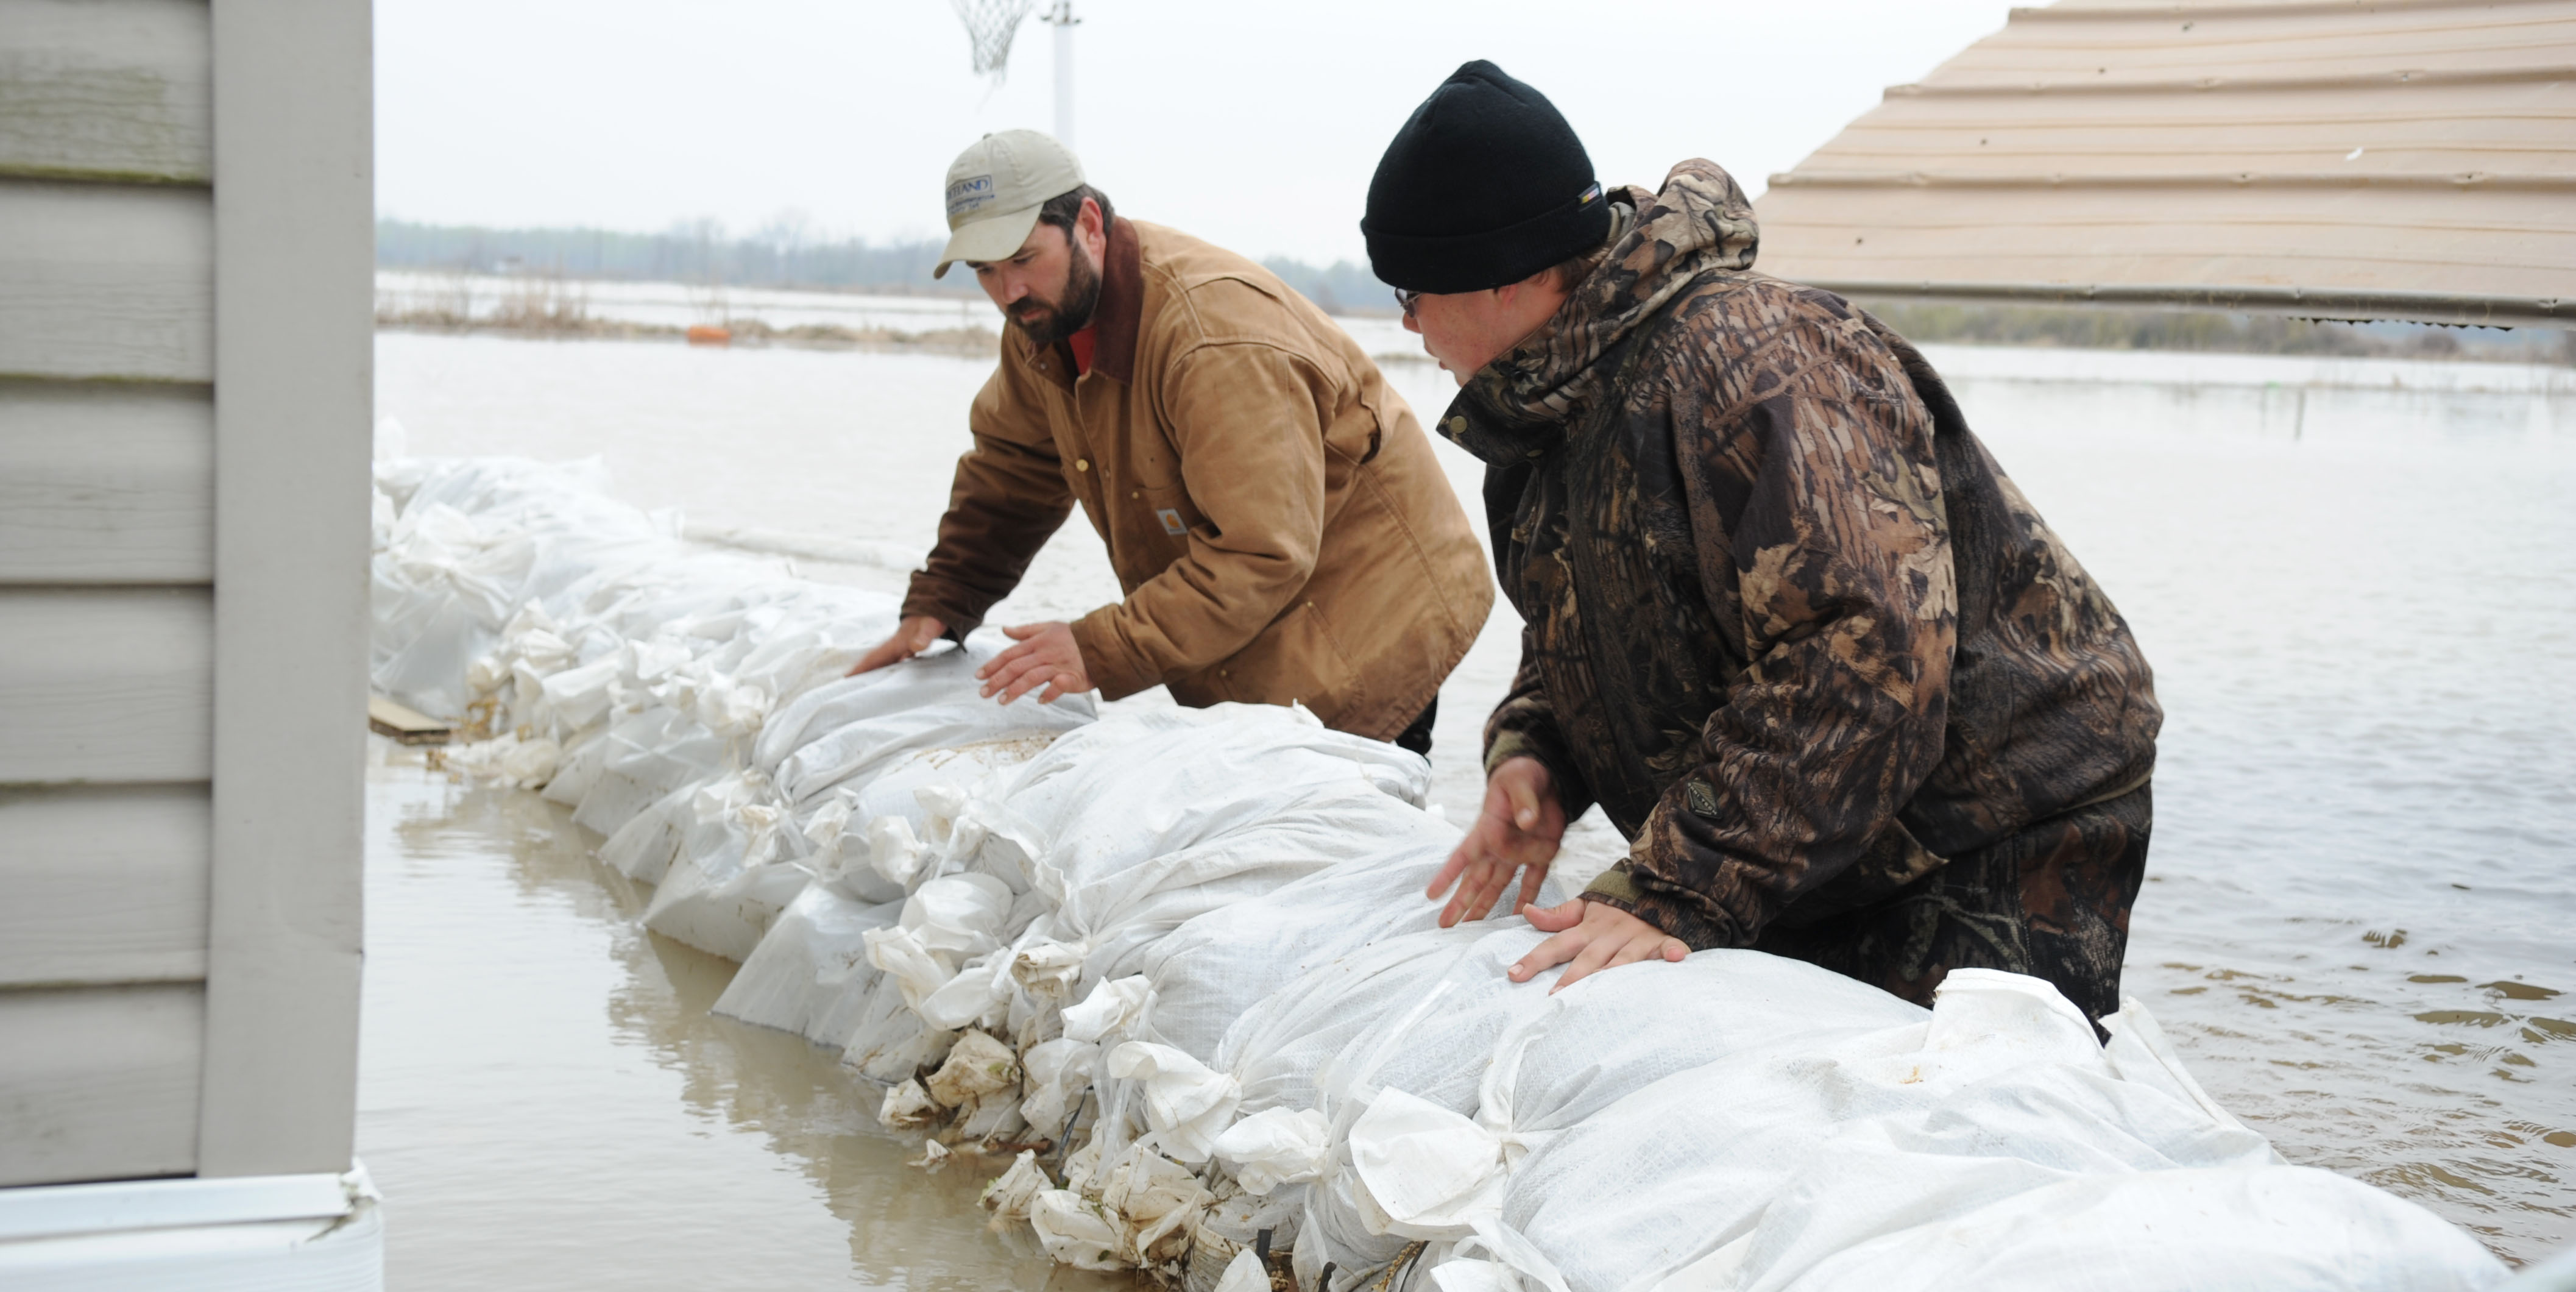 Biscoe, AR-Philip Lightsey, left, and his son Josh, check the water levels around the sandbags which encompass his house.  The sandbags are helping to form a protective barrier so that the water level does not rise and get inside of the house. Jocelyn Augustino/FEMA